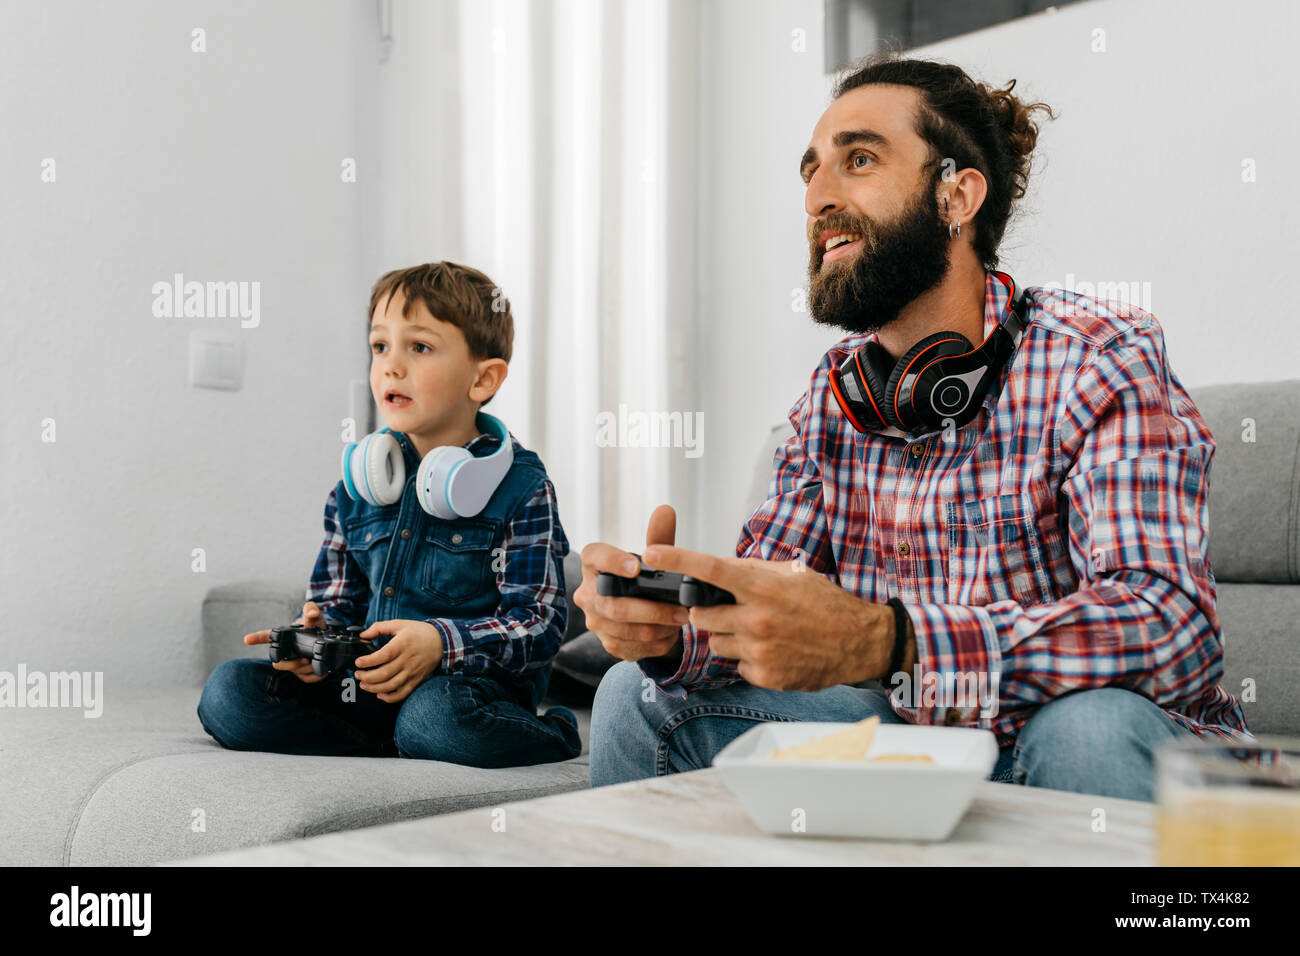 Portrait of father and son sitting together on the couch playing computer game Stock Photo